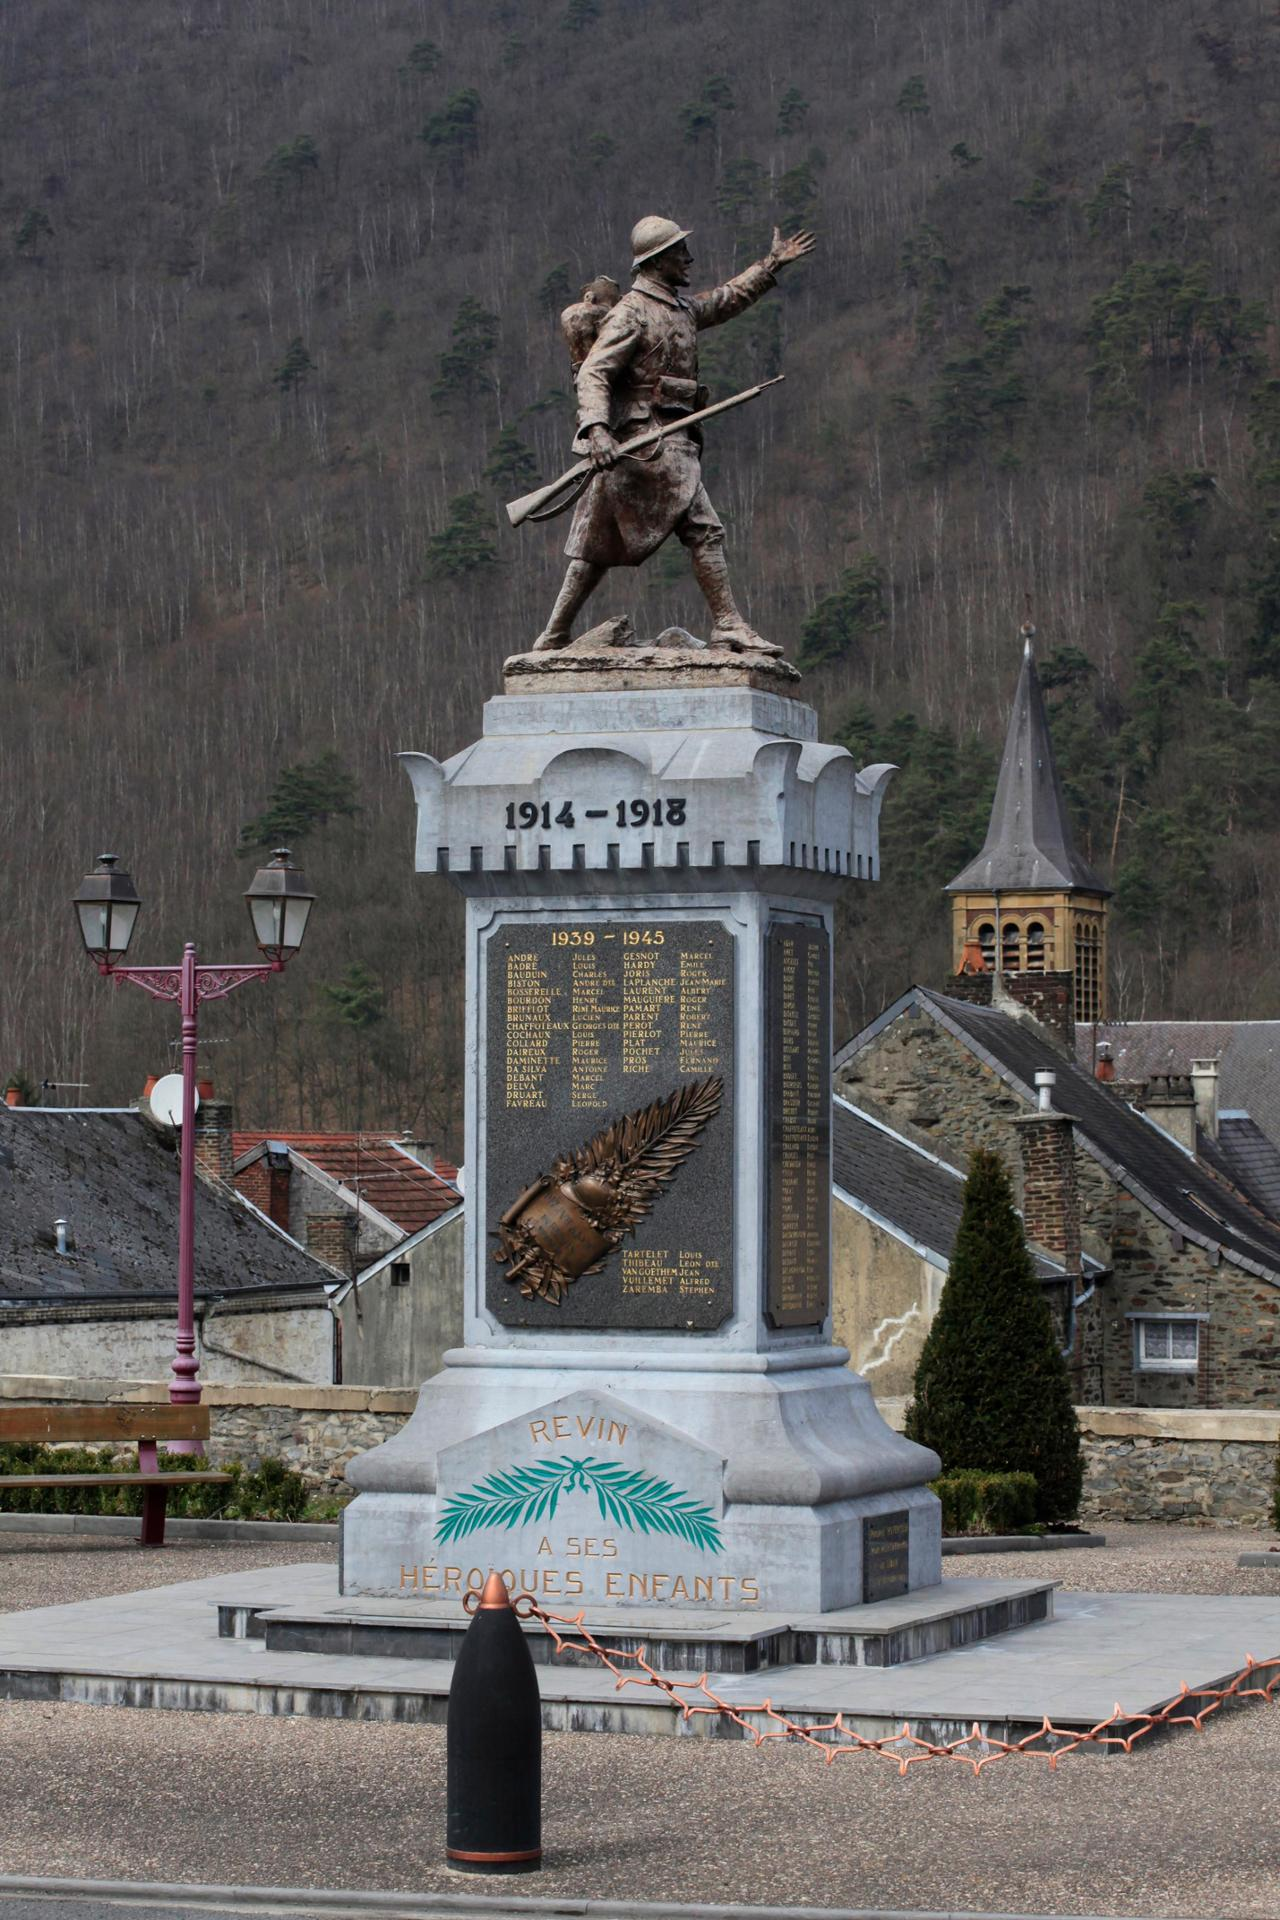 REVIN-ARDENNES-1914-1918